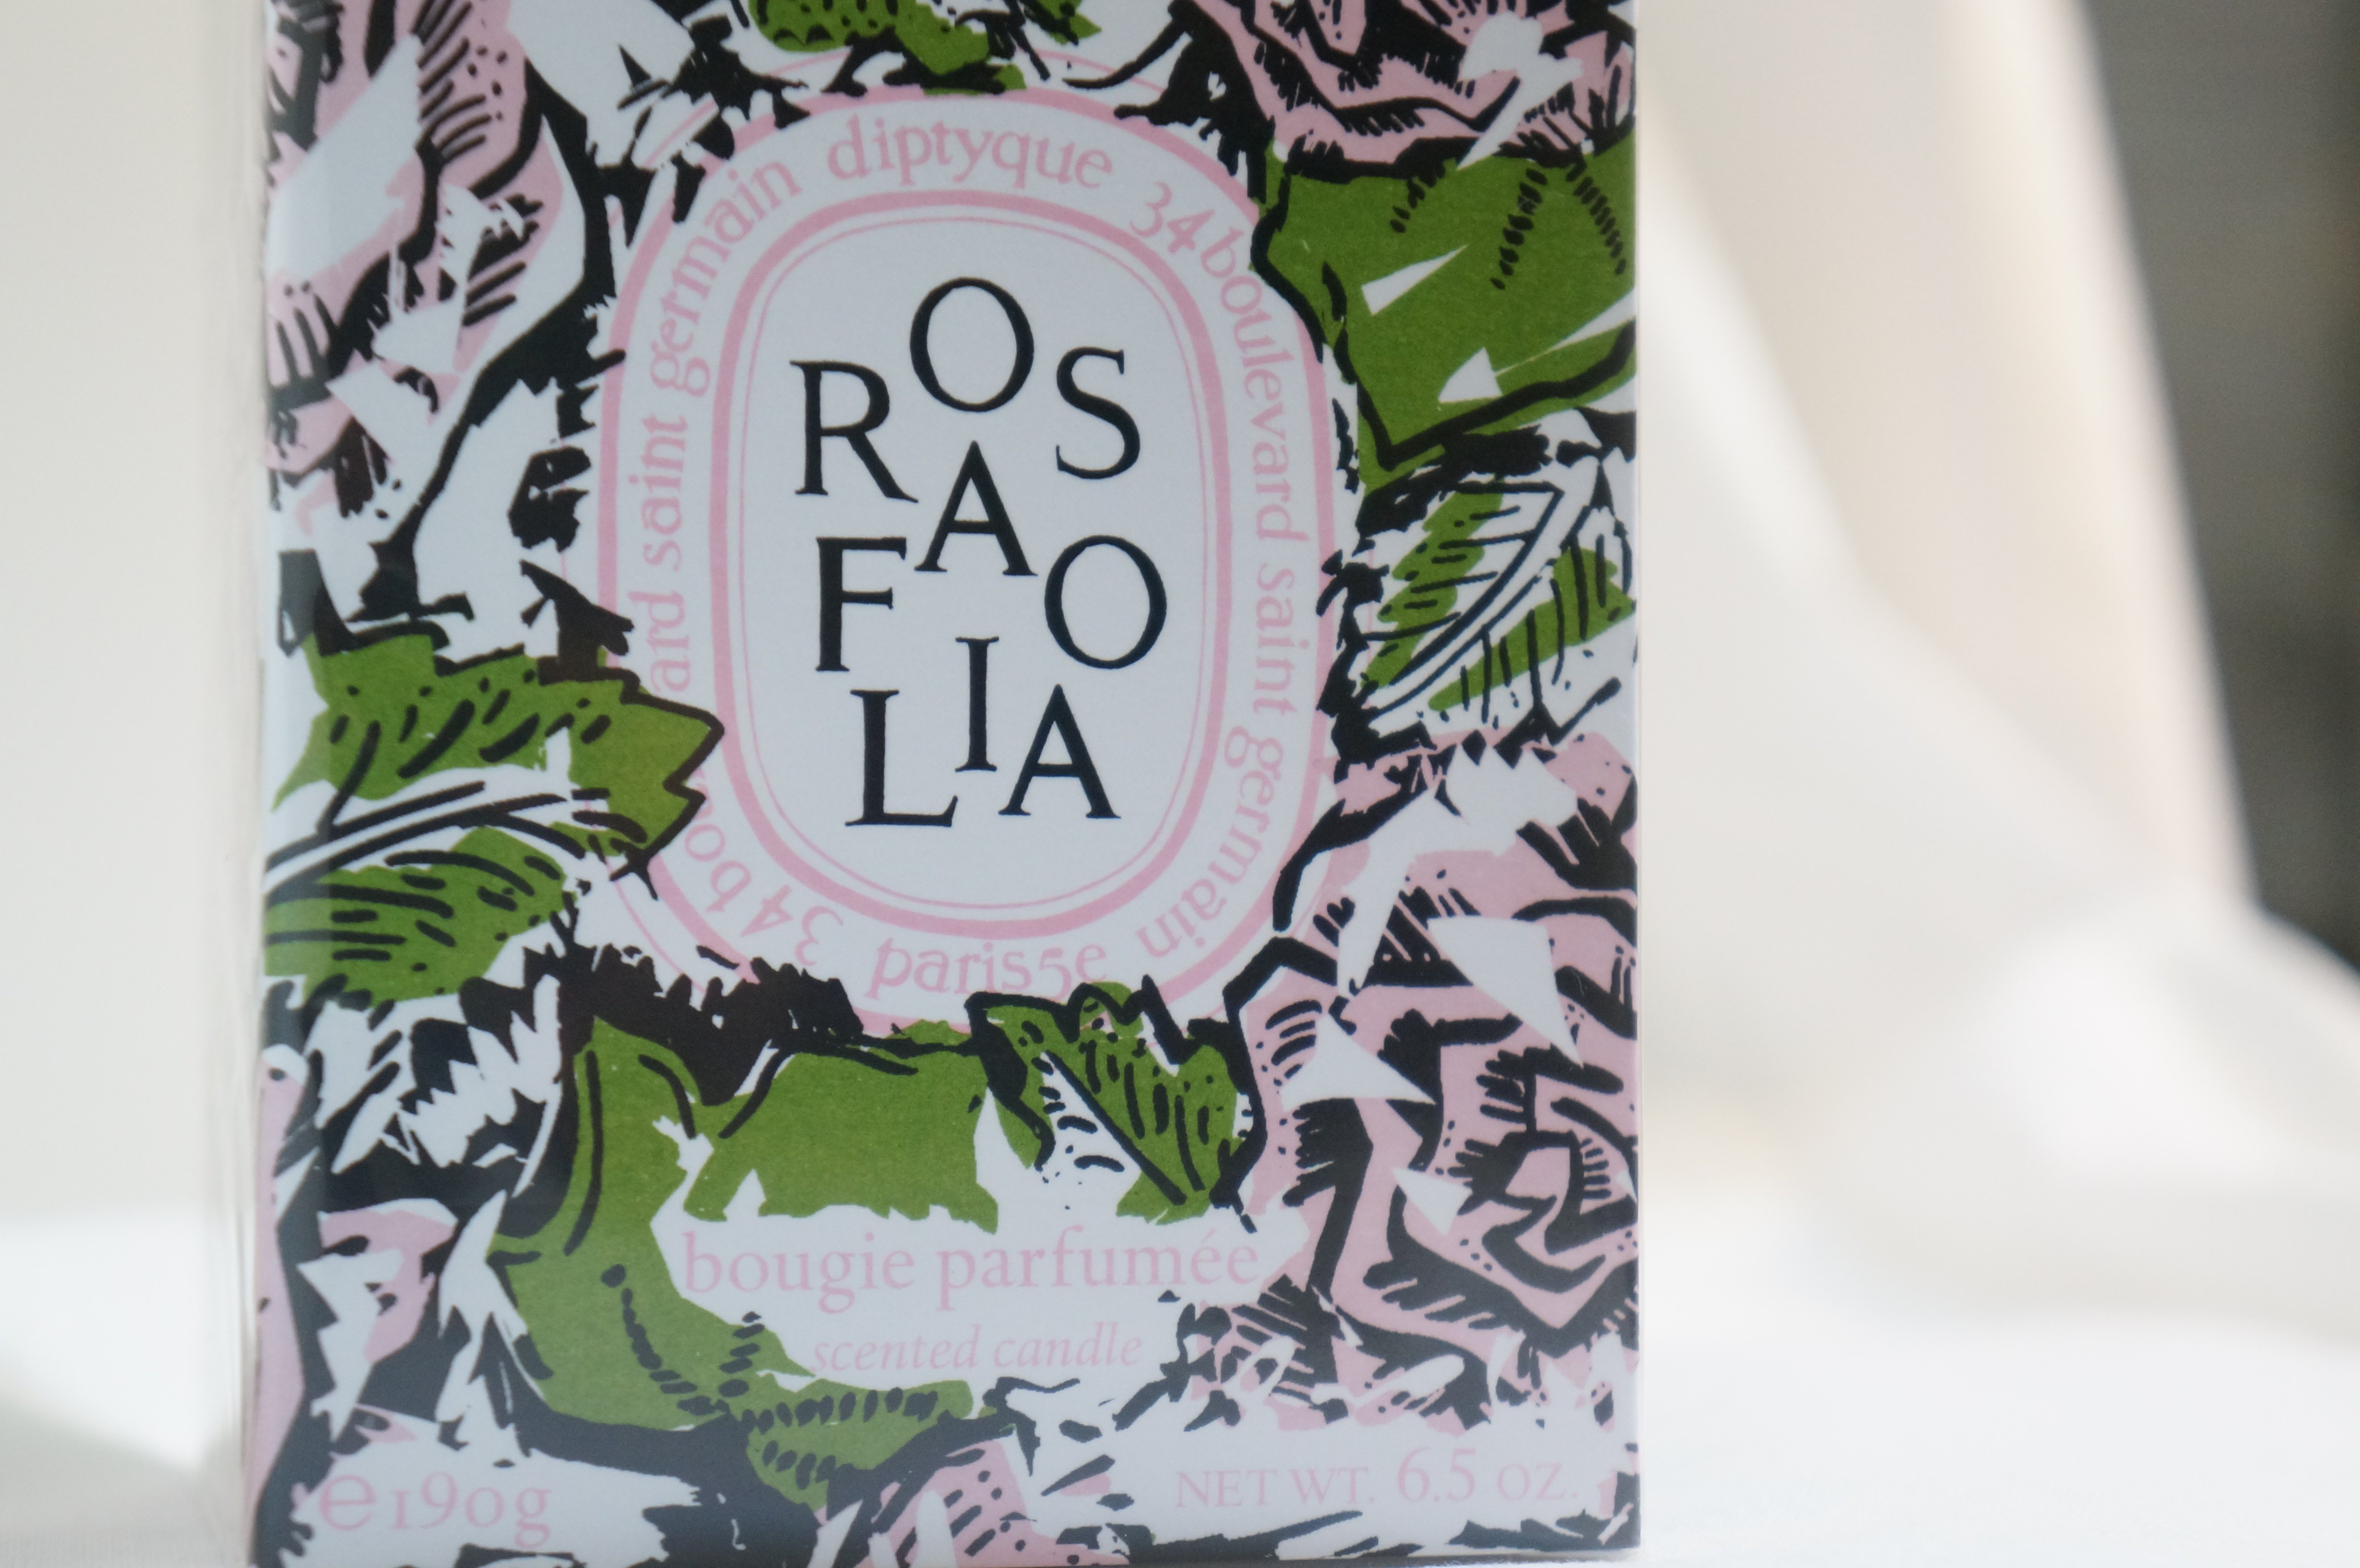 Diptyque Candle Review – Rosafolia